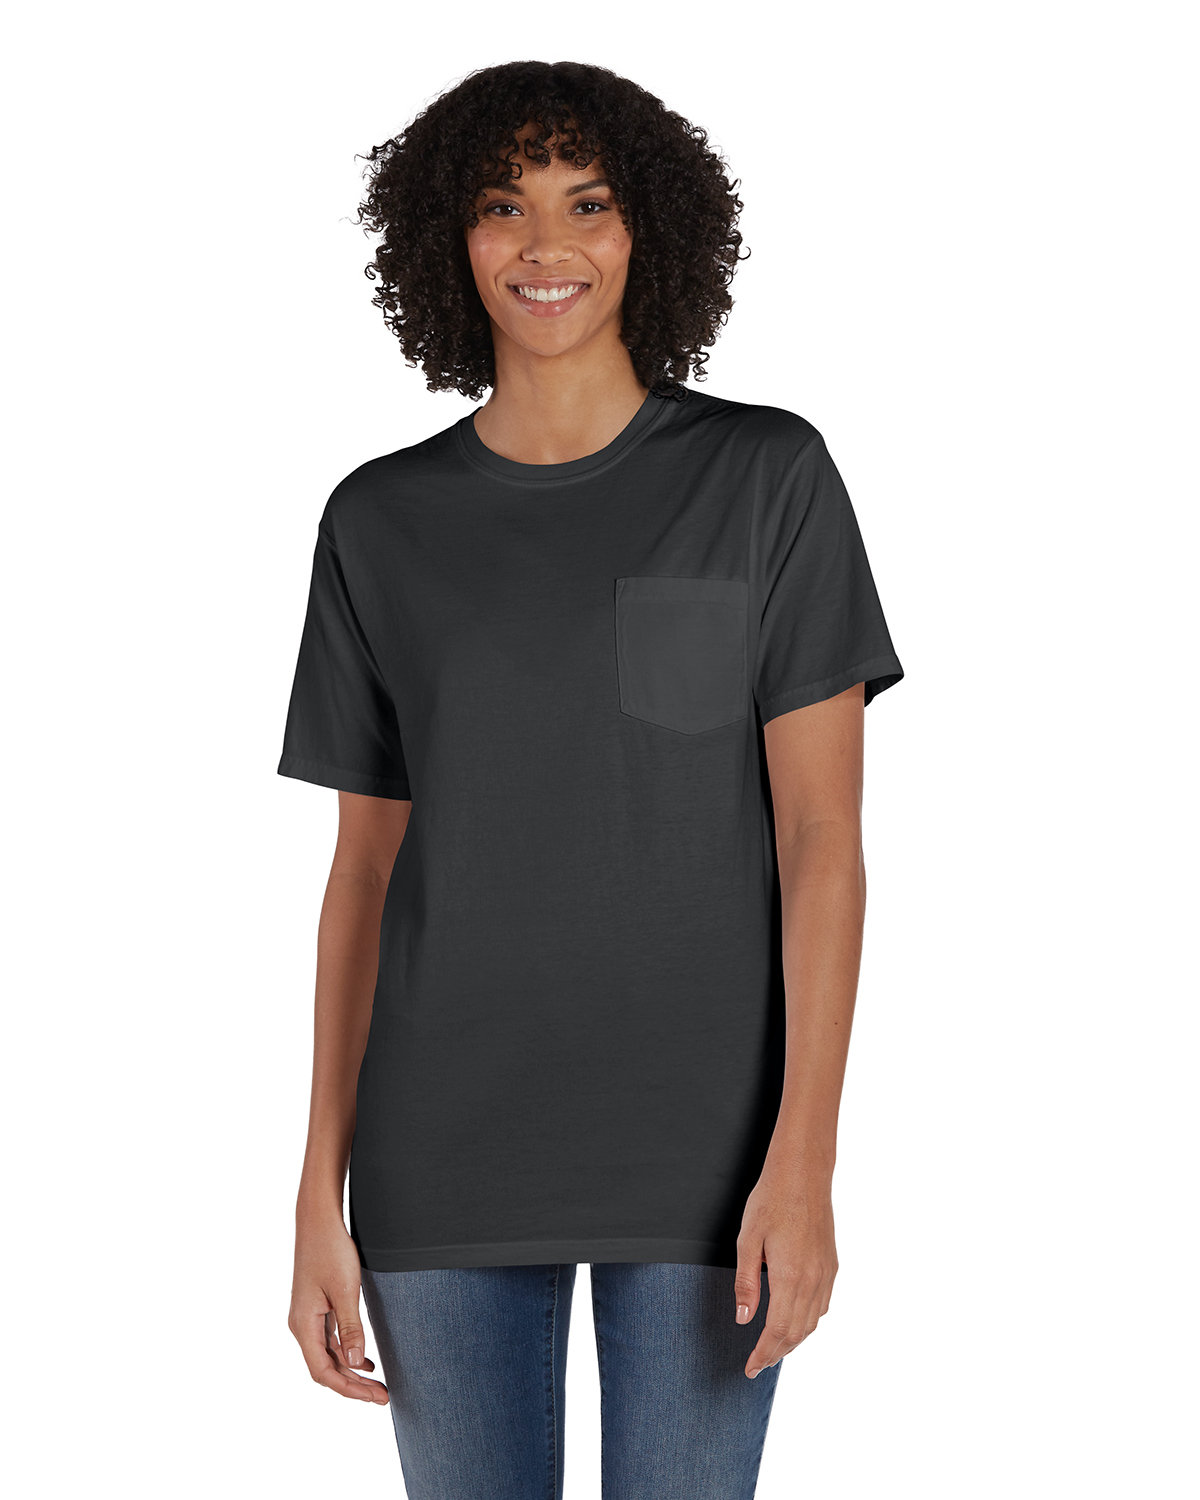 ComfortWash by Hanes Unisex Garment-Dyed T-Shirt with Pocket NEW RAILROAD